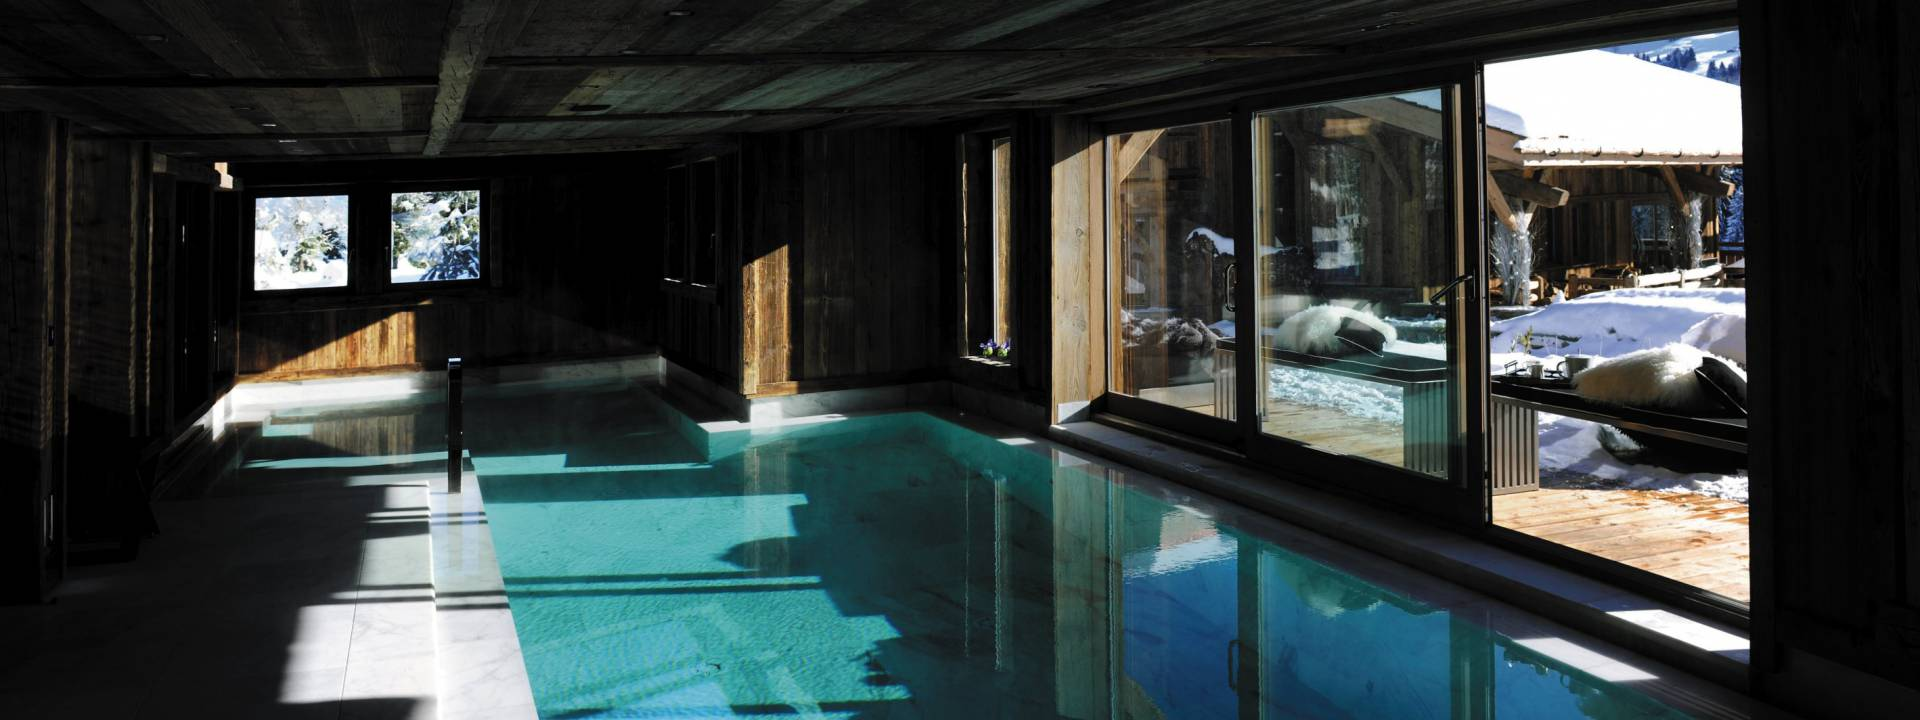 Luxury Winter Chalet, Pool, Switzerland